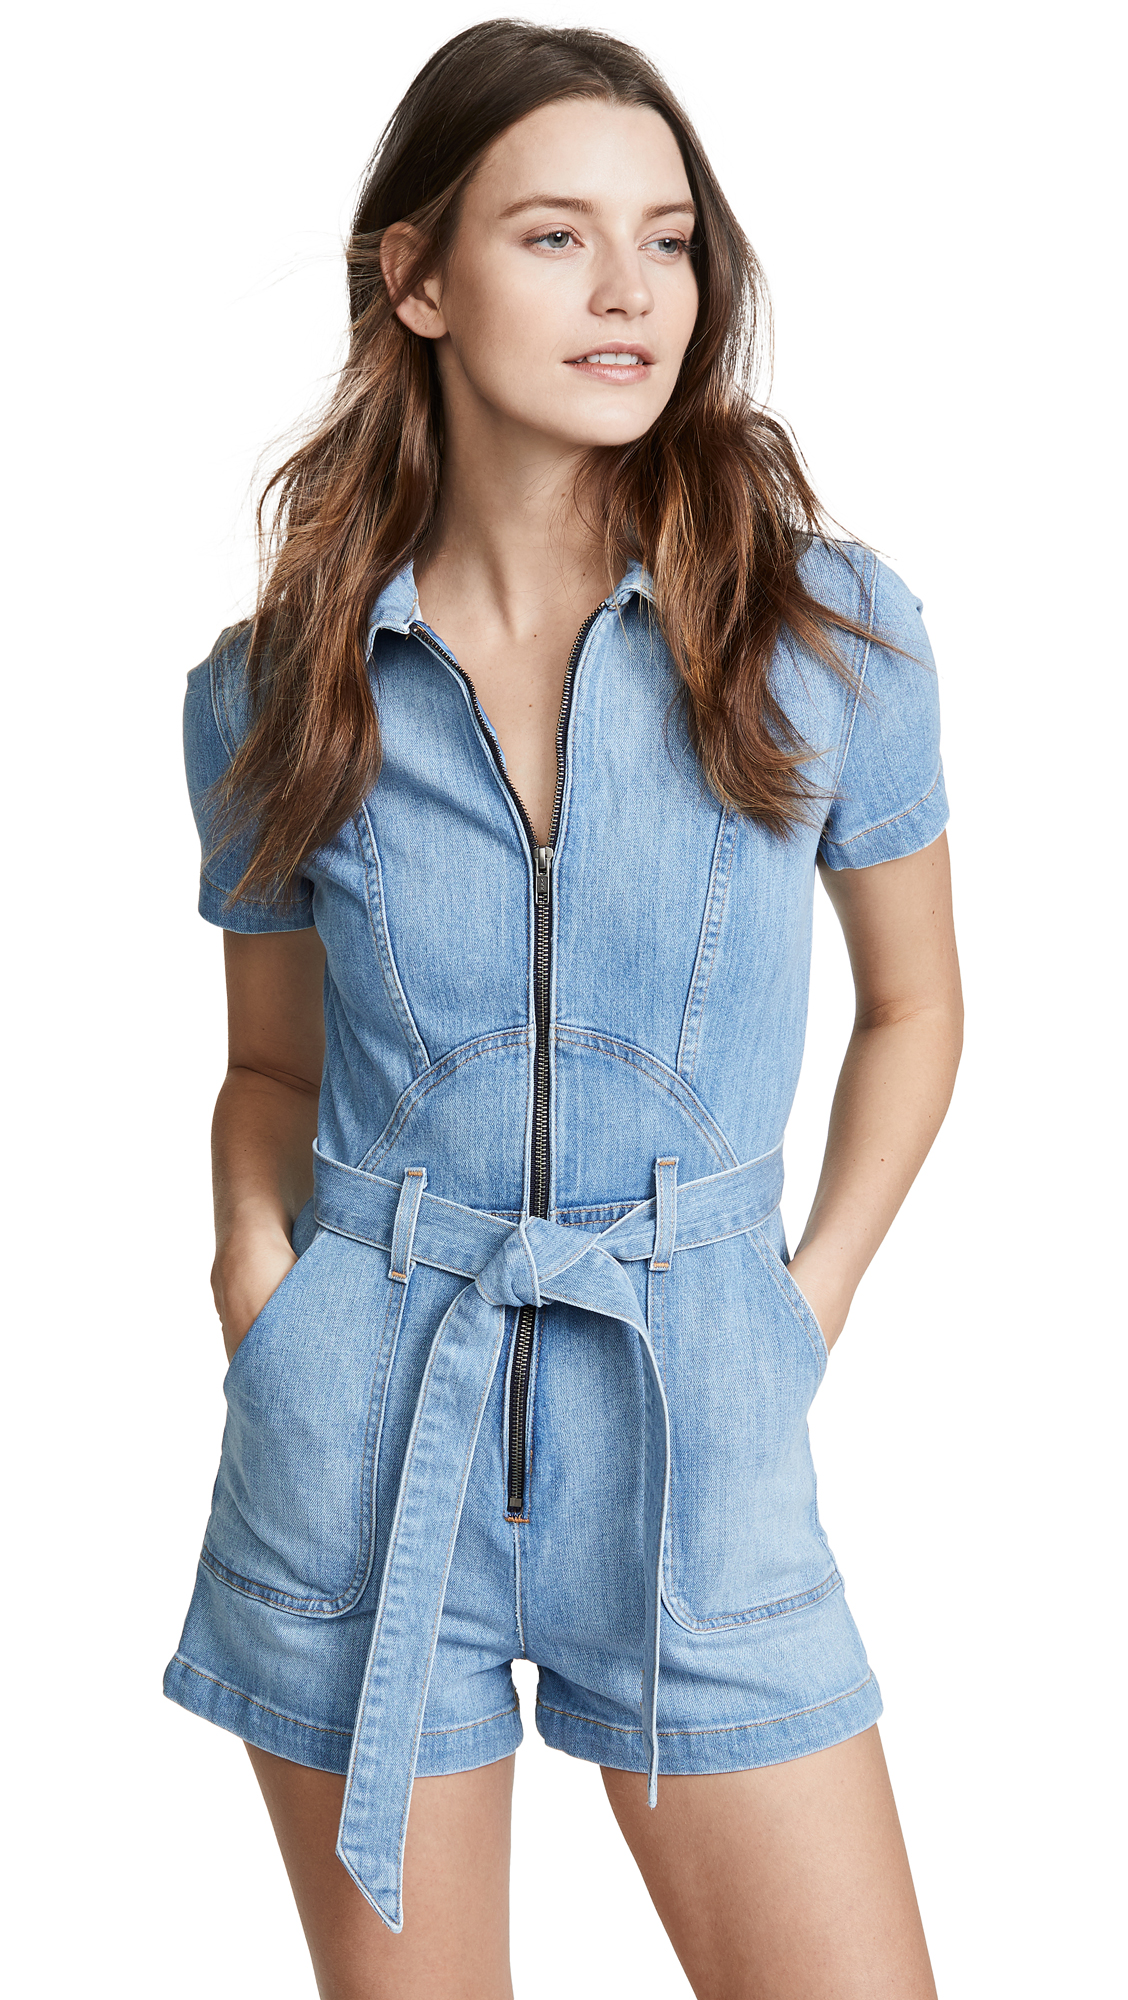 ALICE + OLIVIA JEANS Gorgeous Romper - Fade Away